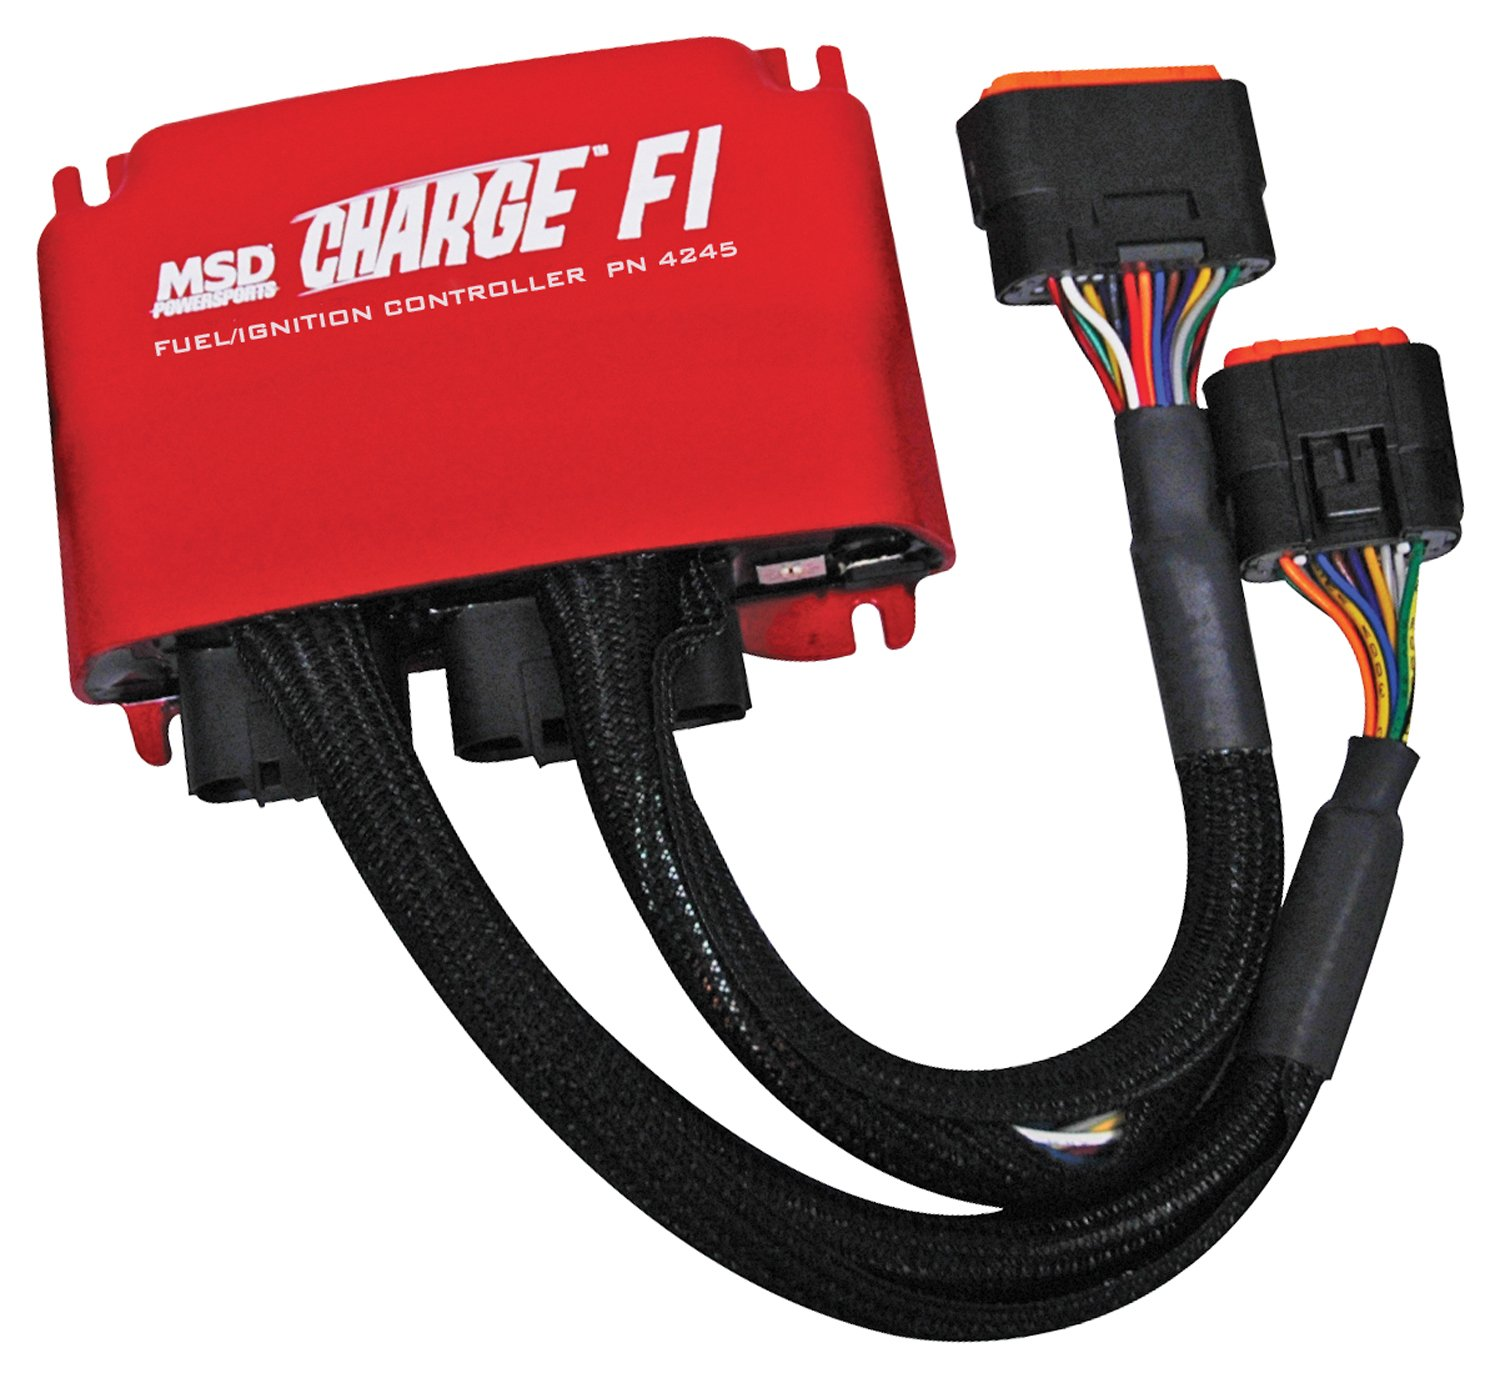 Charge Fuel-Ignition Controller for 2008-2011 Rhinos